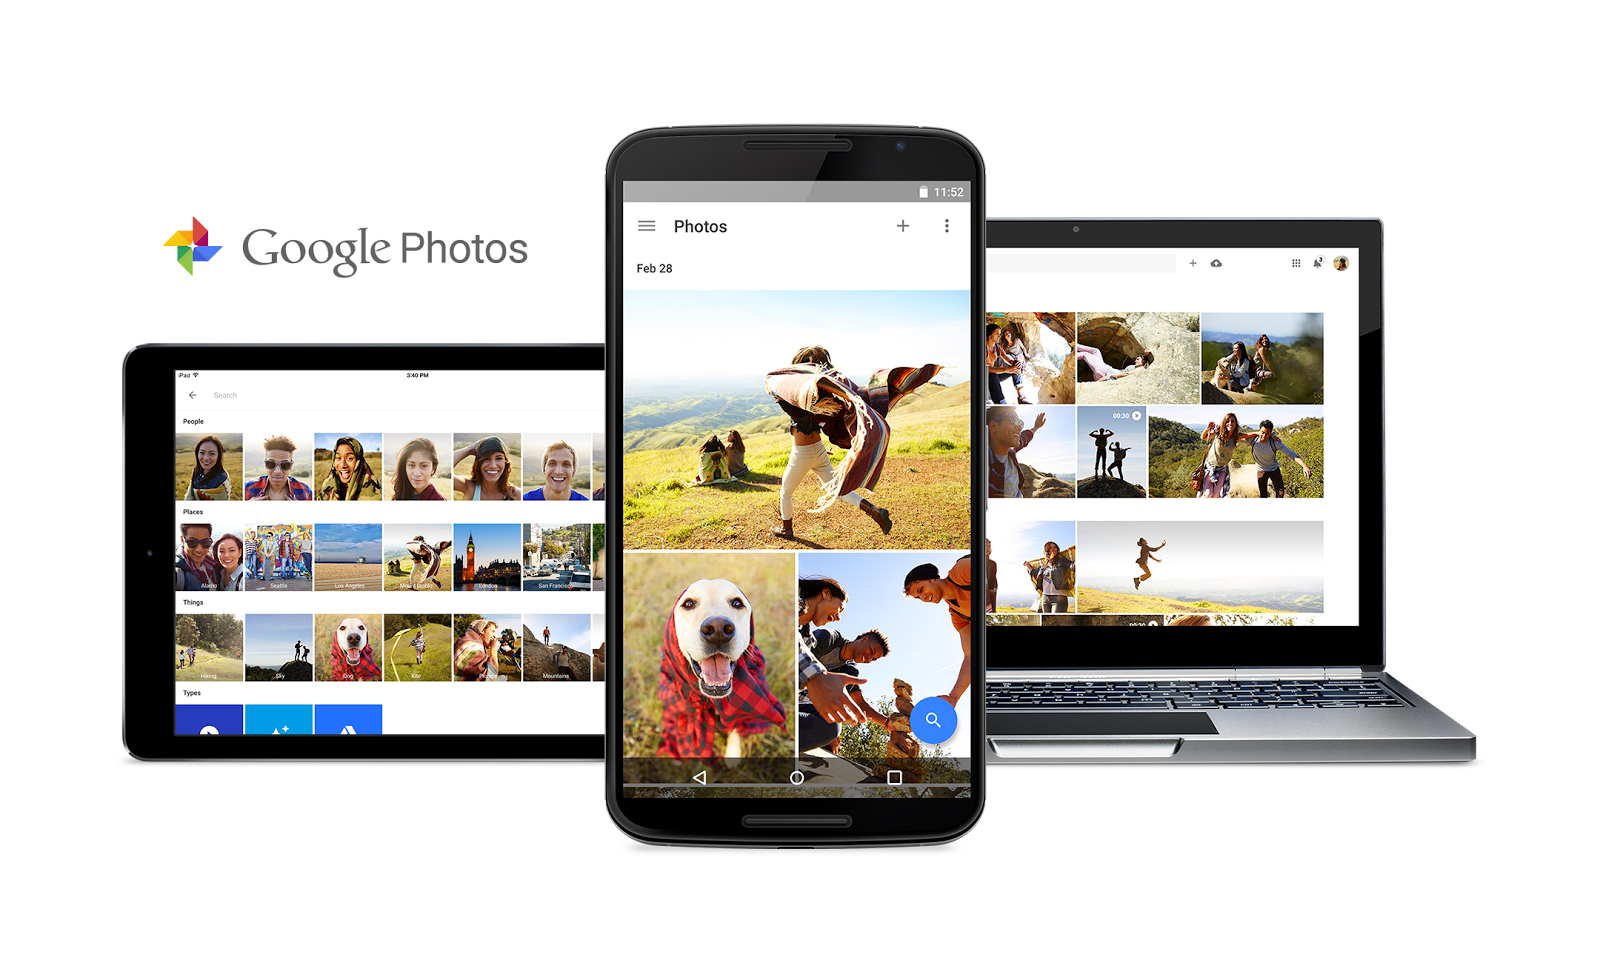 The new Google Photos service offers unlimited storage for your photos and videos